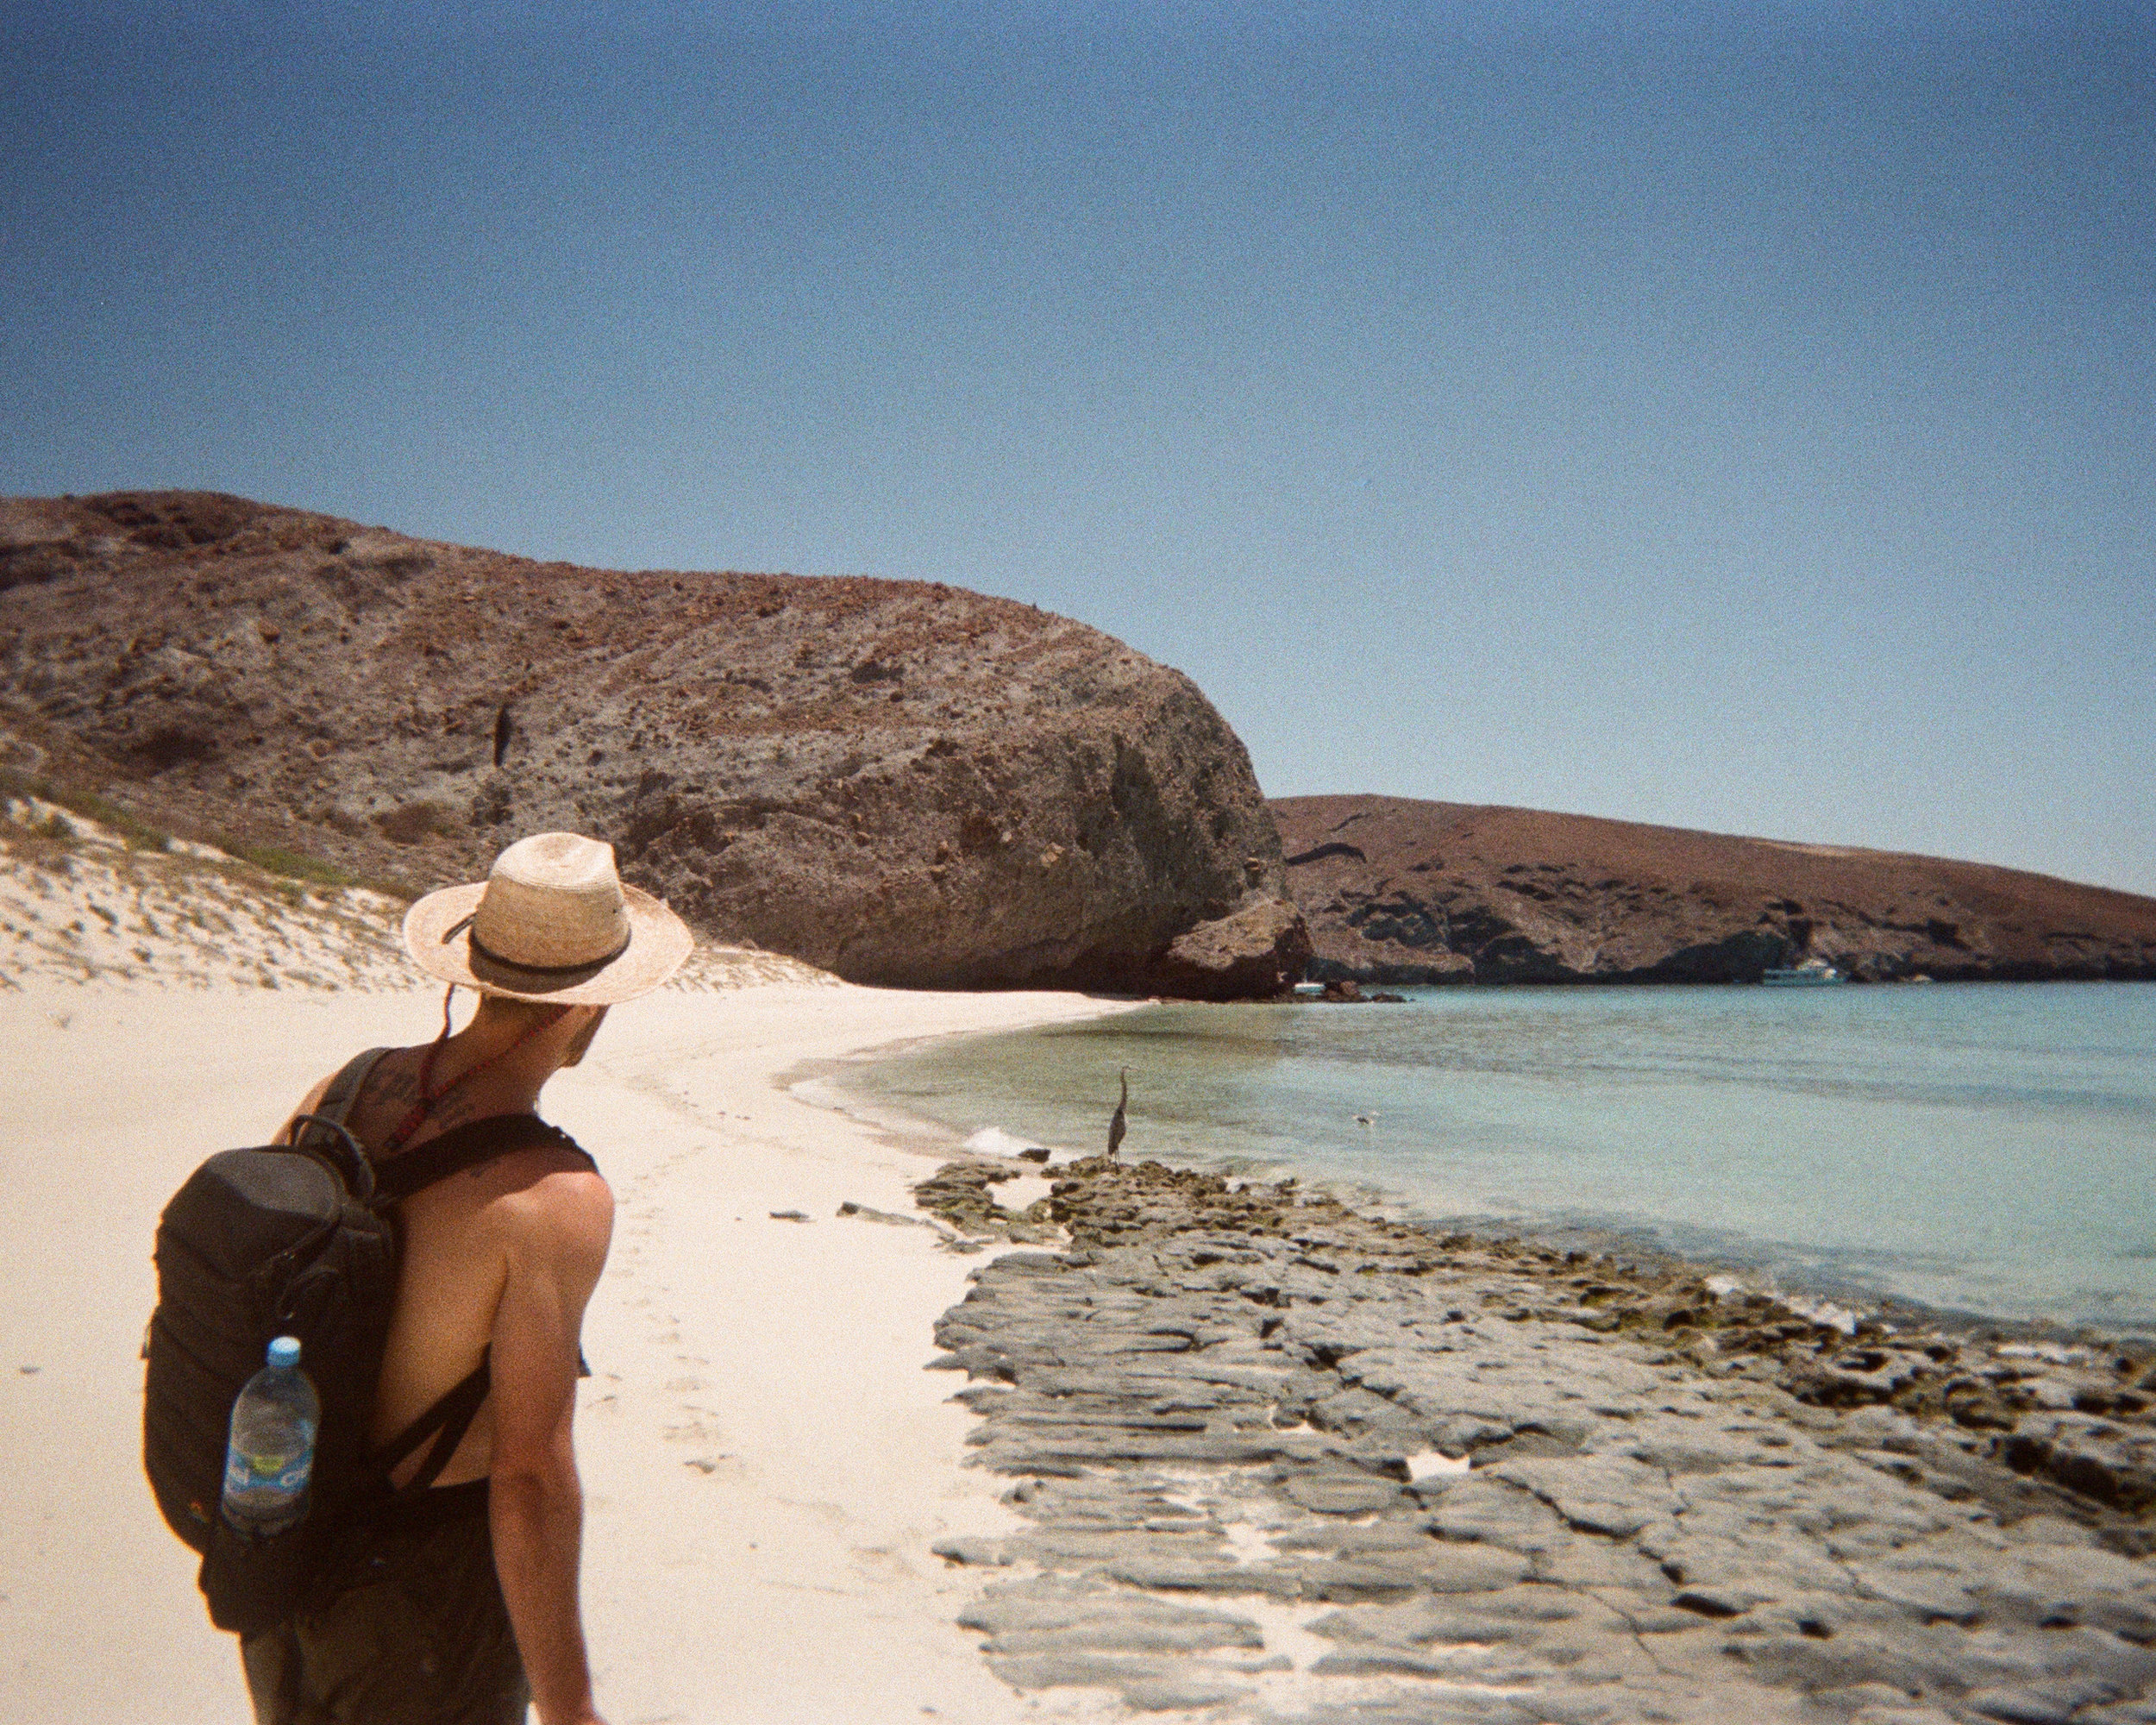 Photograph of Jon Moore in Baja Mexico, Creative Director at The Beans and Rice